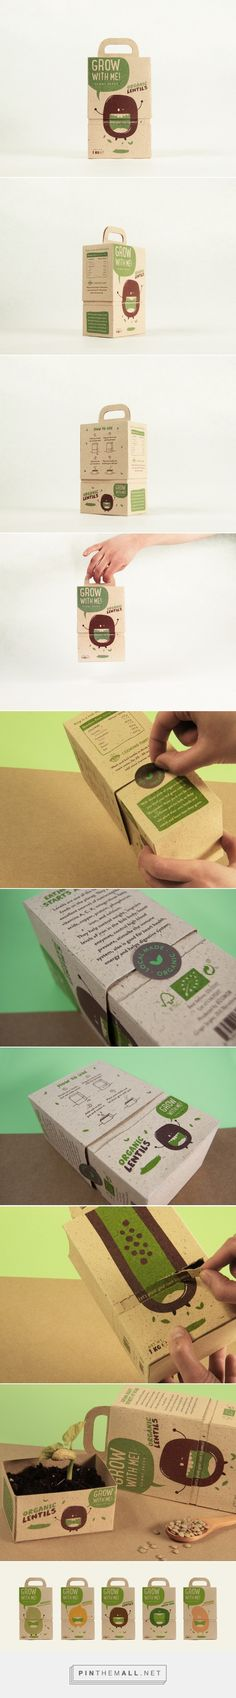 Grow With Me! / Ecopackaging project/ designed by Cristina Castells, Maria Fernanda Peña, Andrea Ribera